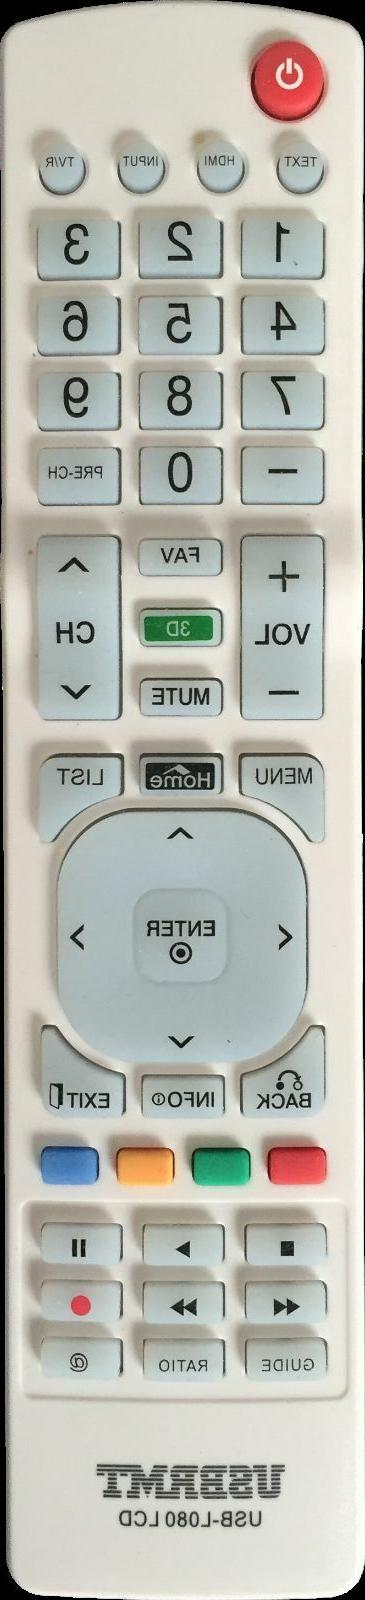 New USB Remote for RCA Smart Black Remote Programmed